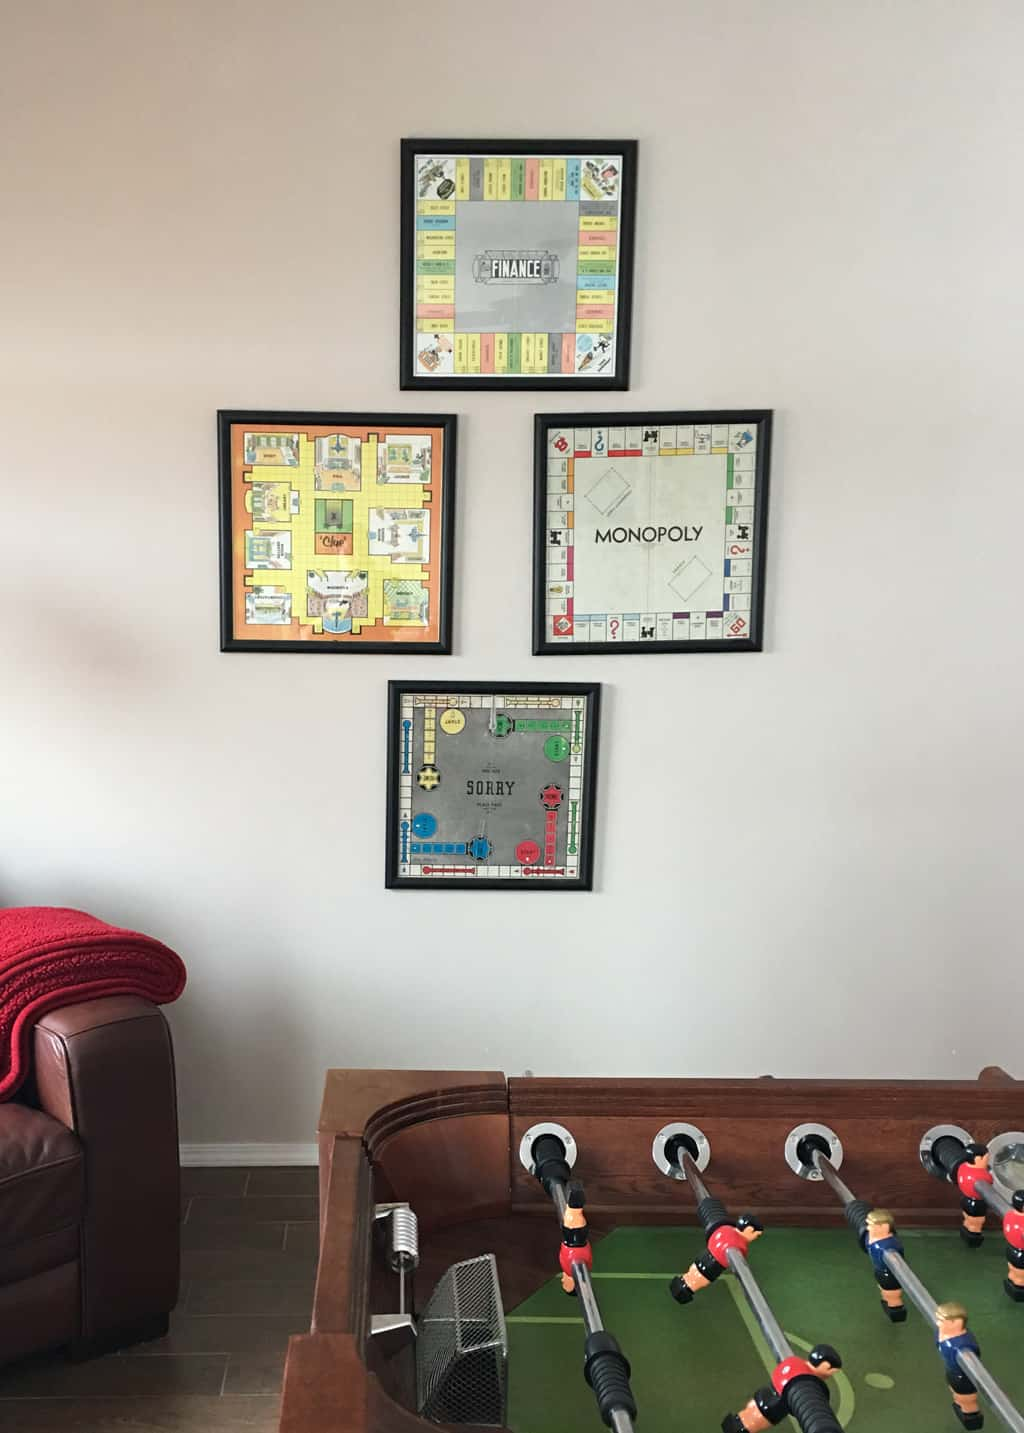 photo of a game room with a fooseball table and old game boards hung on the wall.